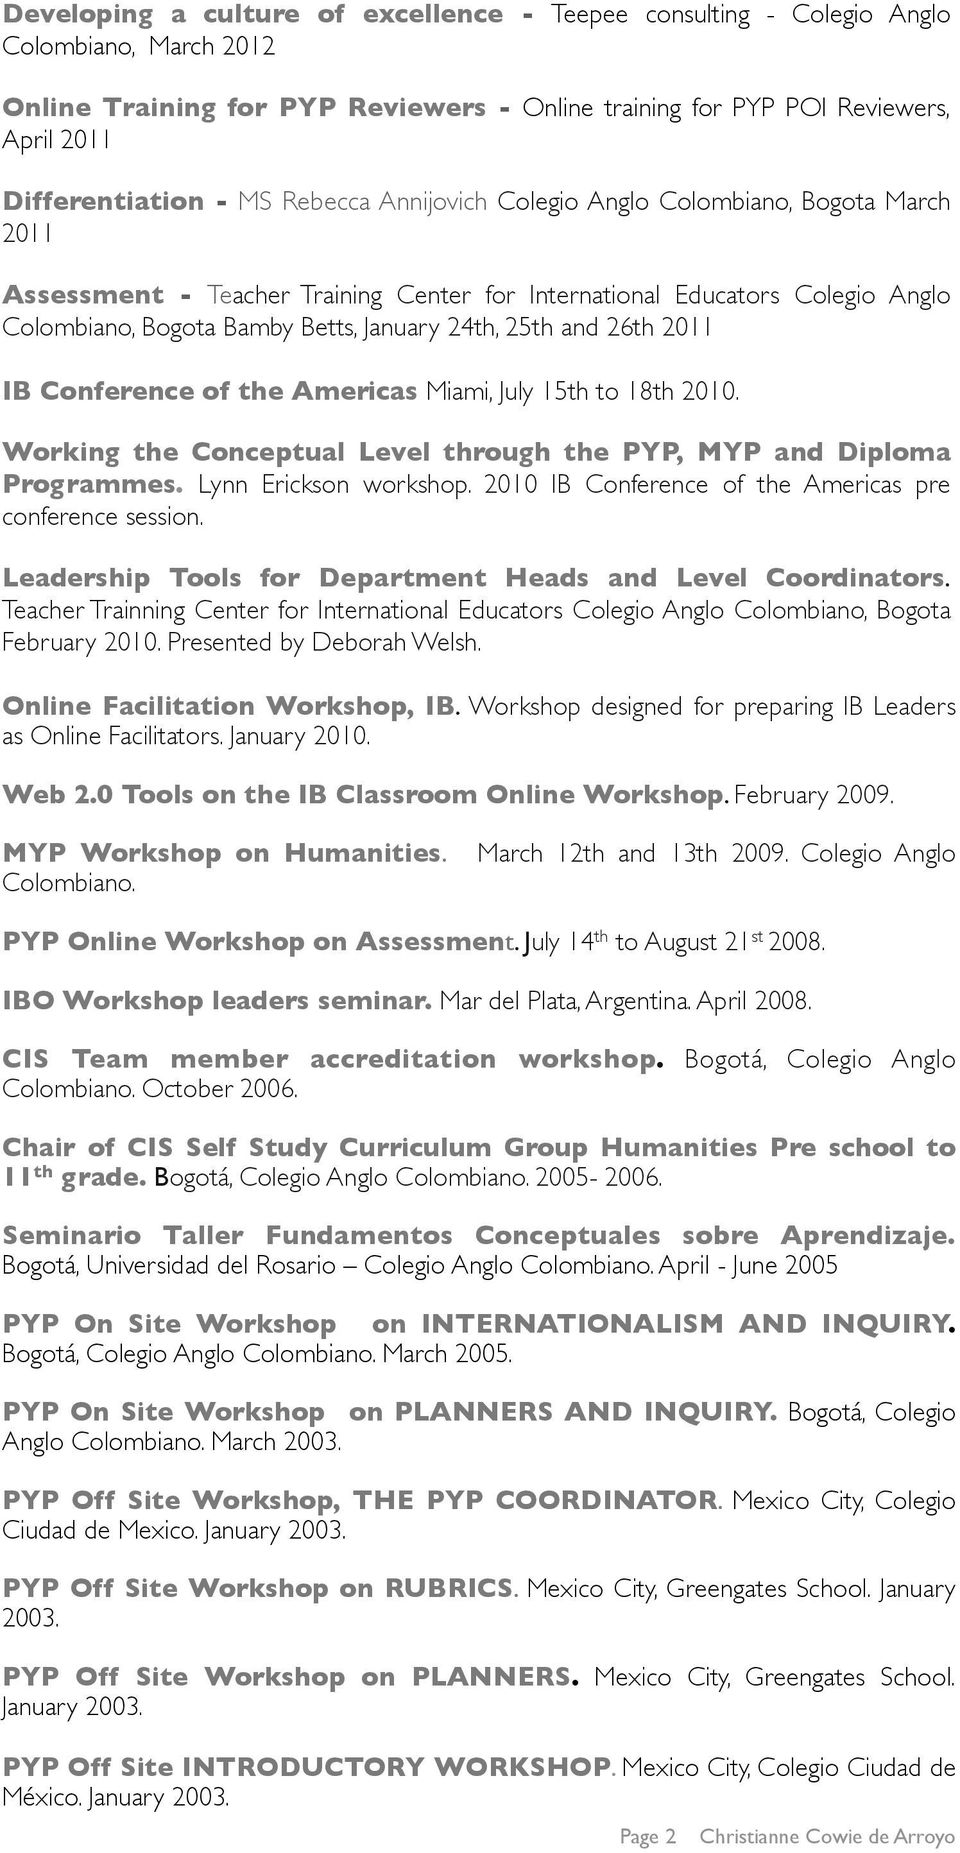 26th 2011 IB Conference of the Americas Miami, July 15th to 18th 2010. Working the Conceptual Level through the PYP, MYP and Diploma Programmes. Lynn Erickson workshop.